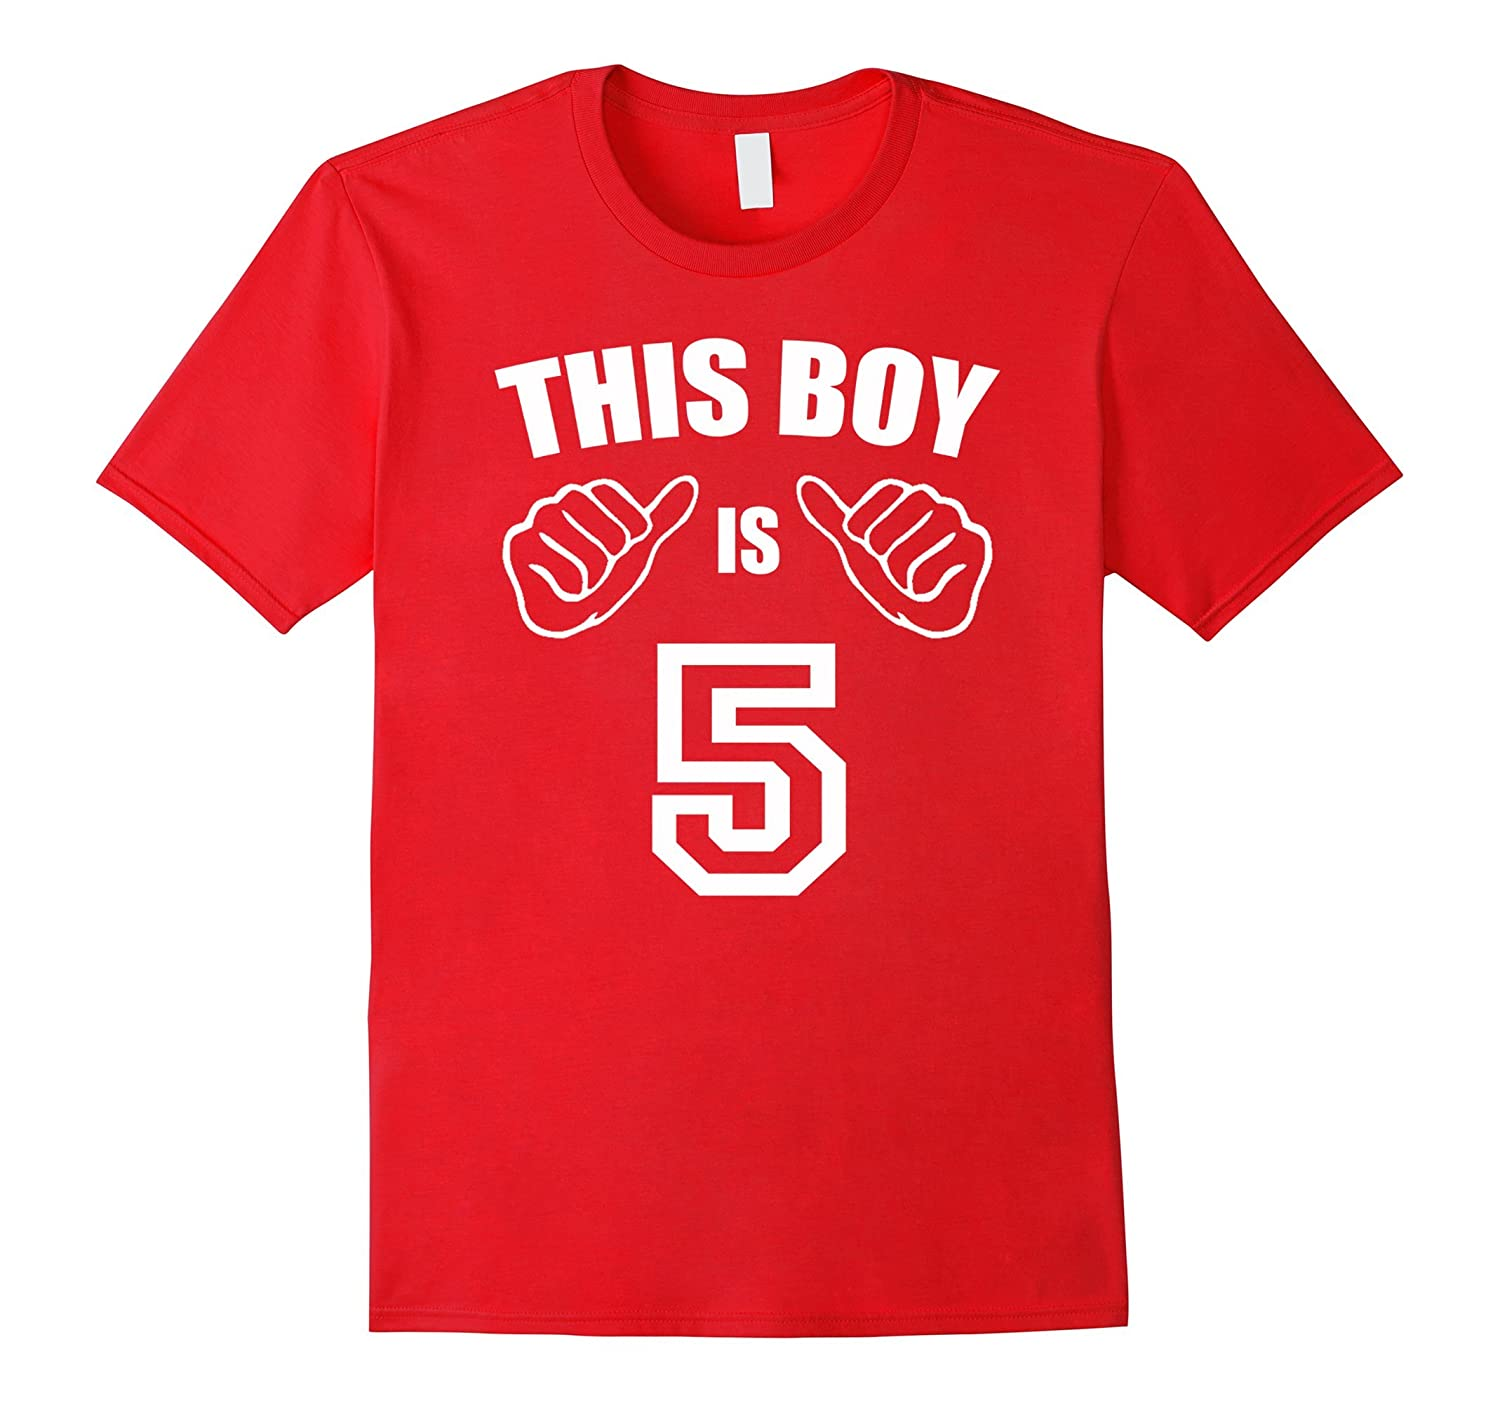 5 Year Old Shirt For Boy Kid 5th Birthday Gift Idea 2012 PL Polozatee